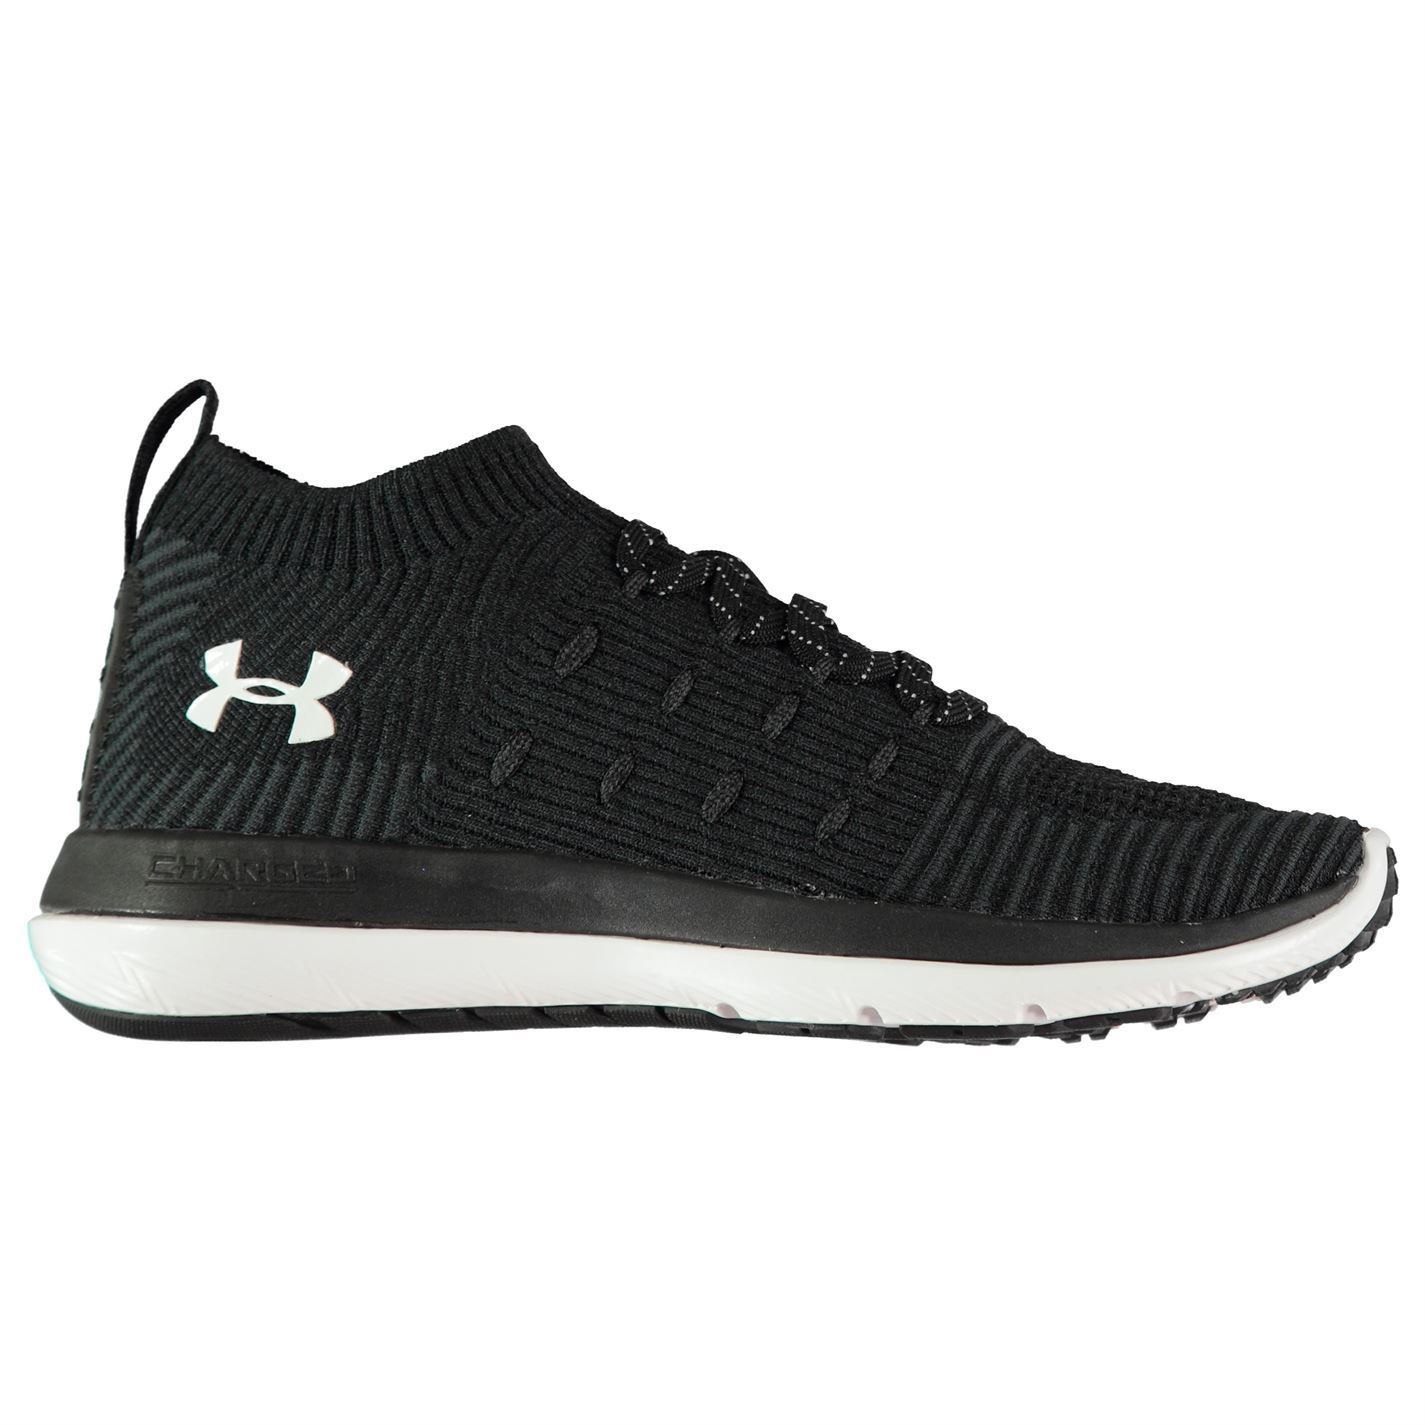 Under Armour Slingflex Mid Sneakers Ladies Runners Laces Fastened Padded Ankle